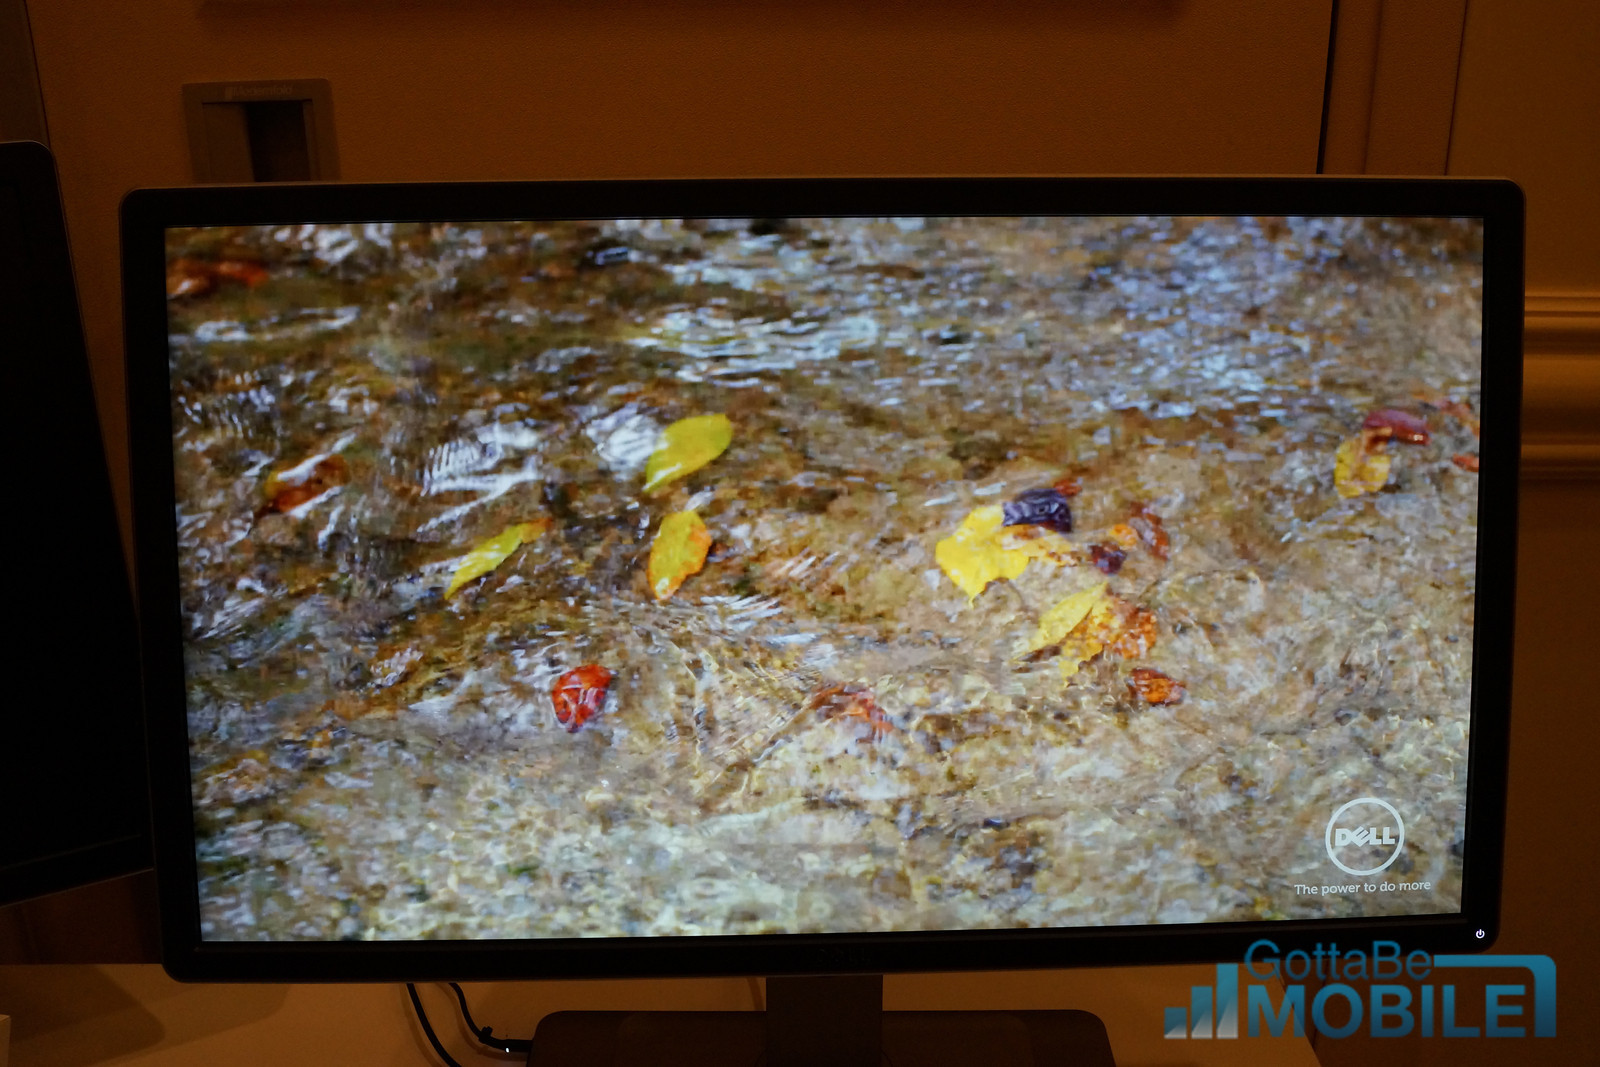 The Dell $699 4k monitor looks great.